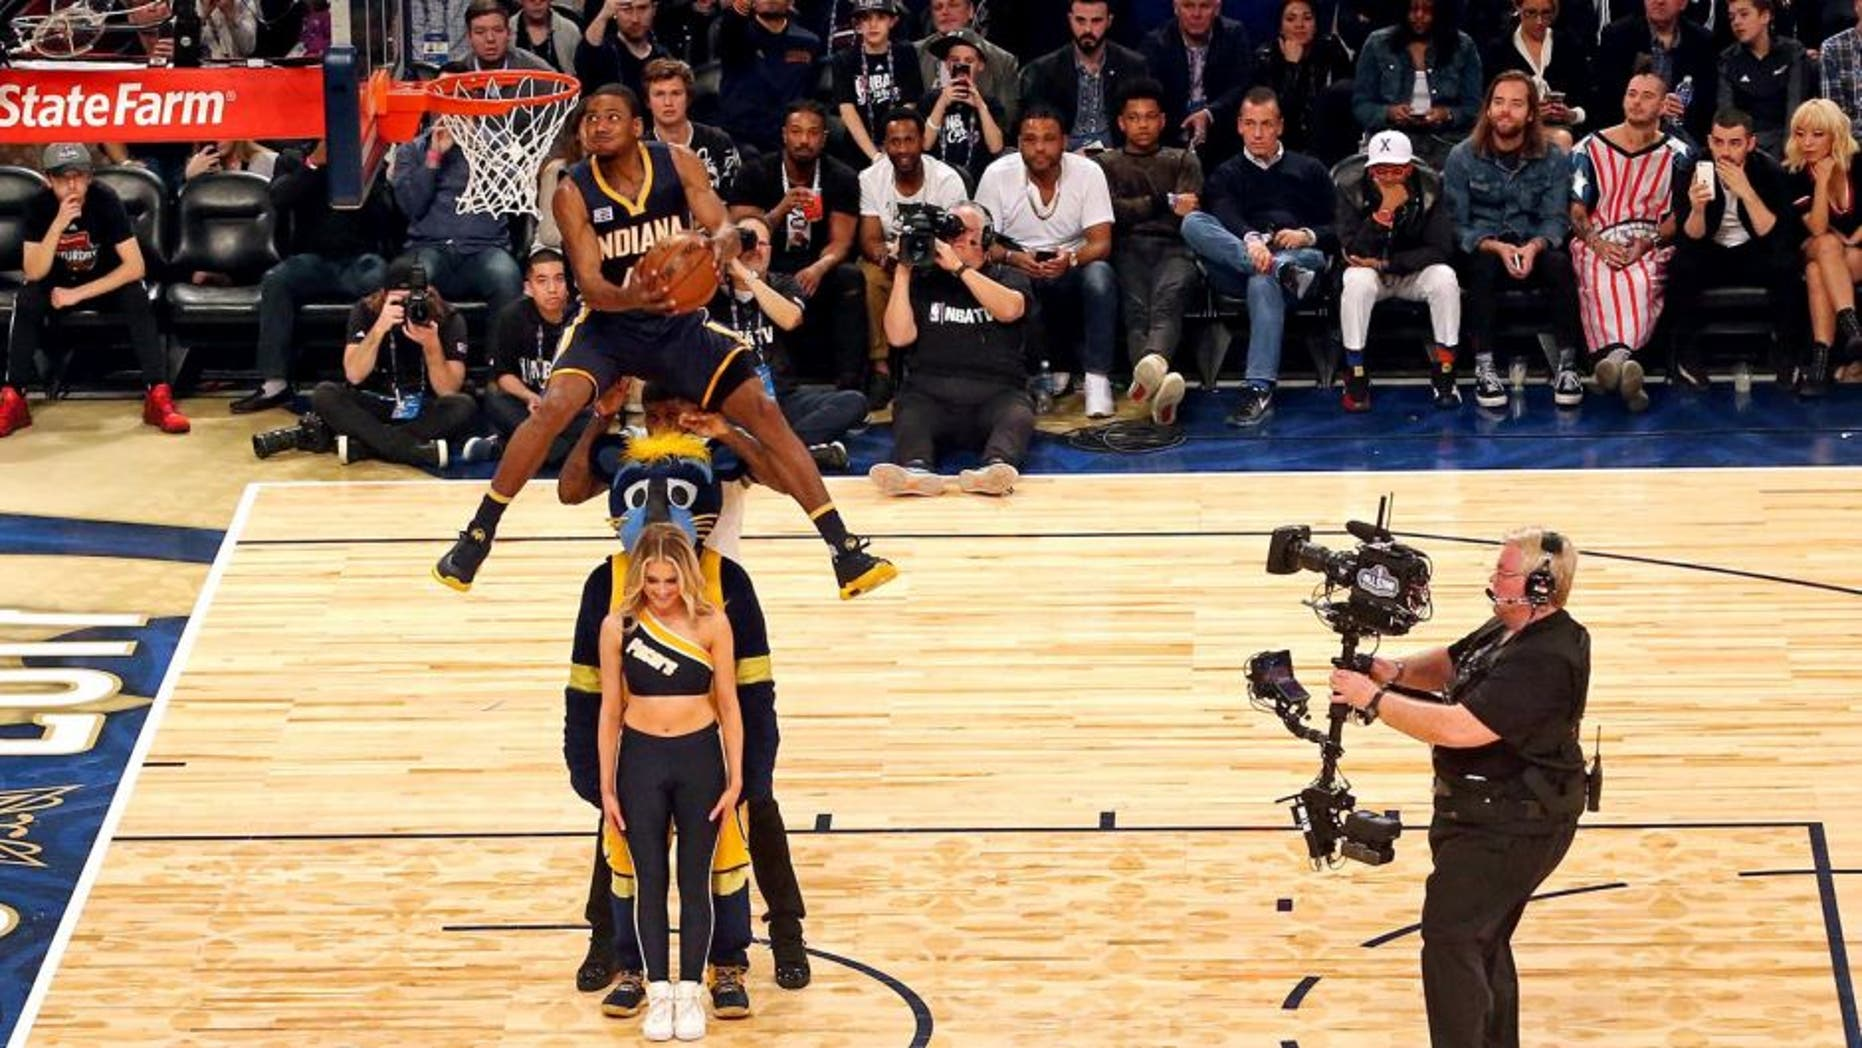 Feb 18, 2017; New Orleans, LA, USA; Indiana Pacers forward Glenn Robinson III (40) makes the winning dunk in the slam dunk contest during NBA All-Star Saturday Night at Smoothie King Center. Mandatory Credit: Bob Donnan-USA TODAY Sports